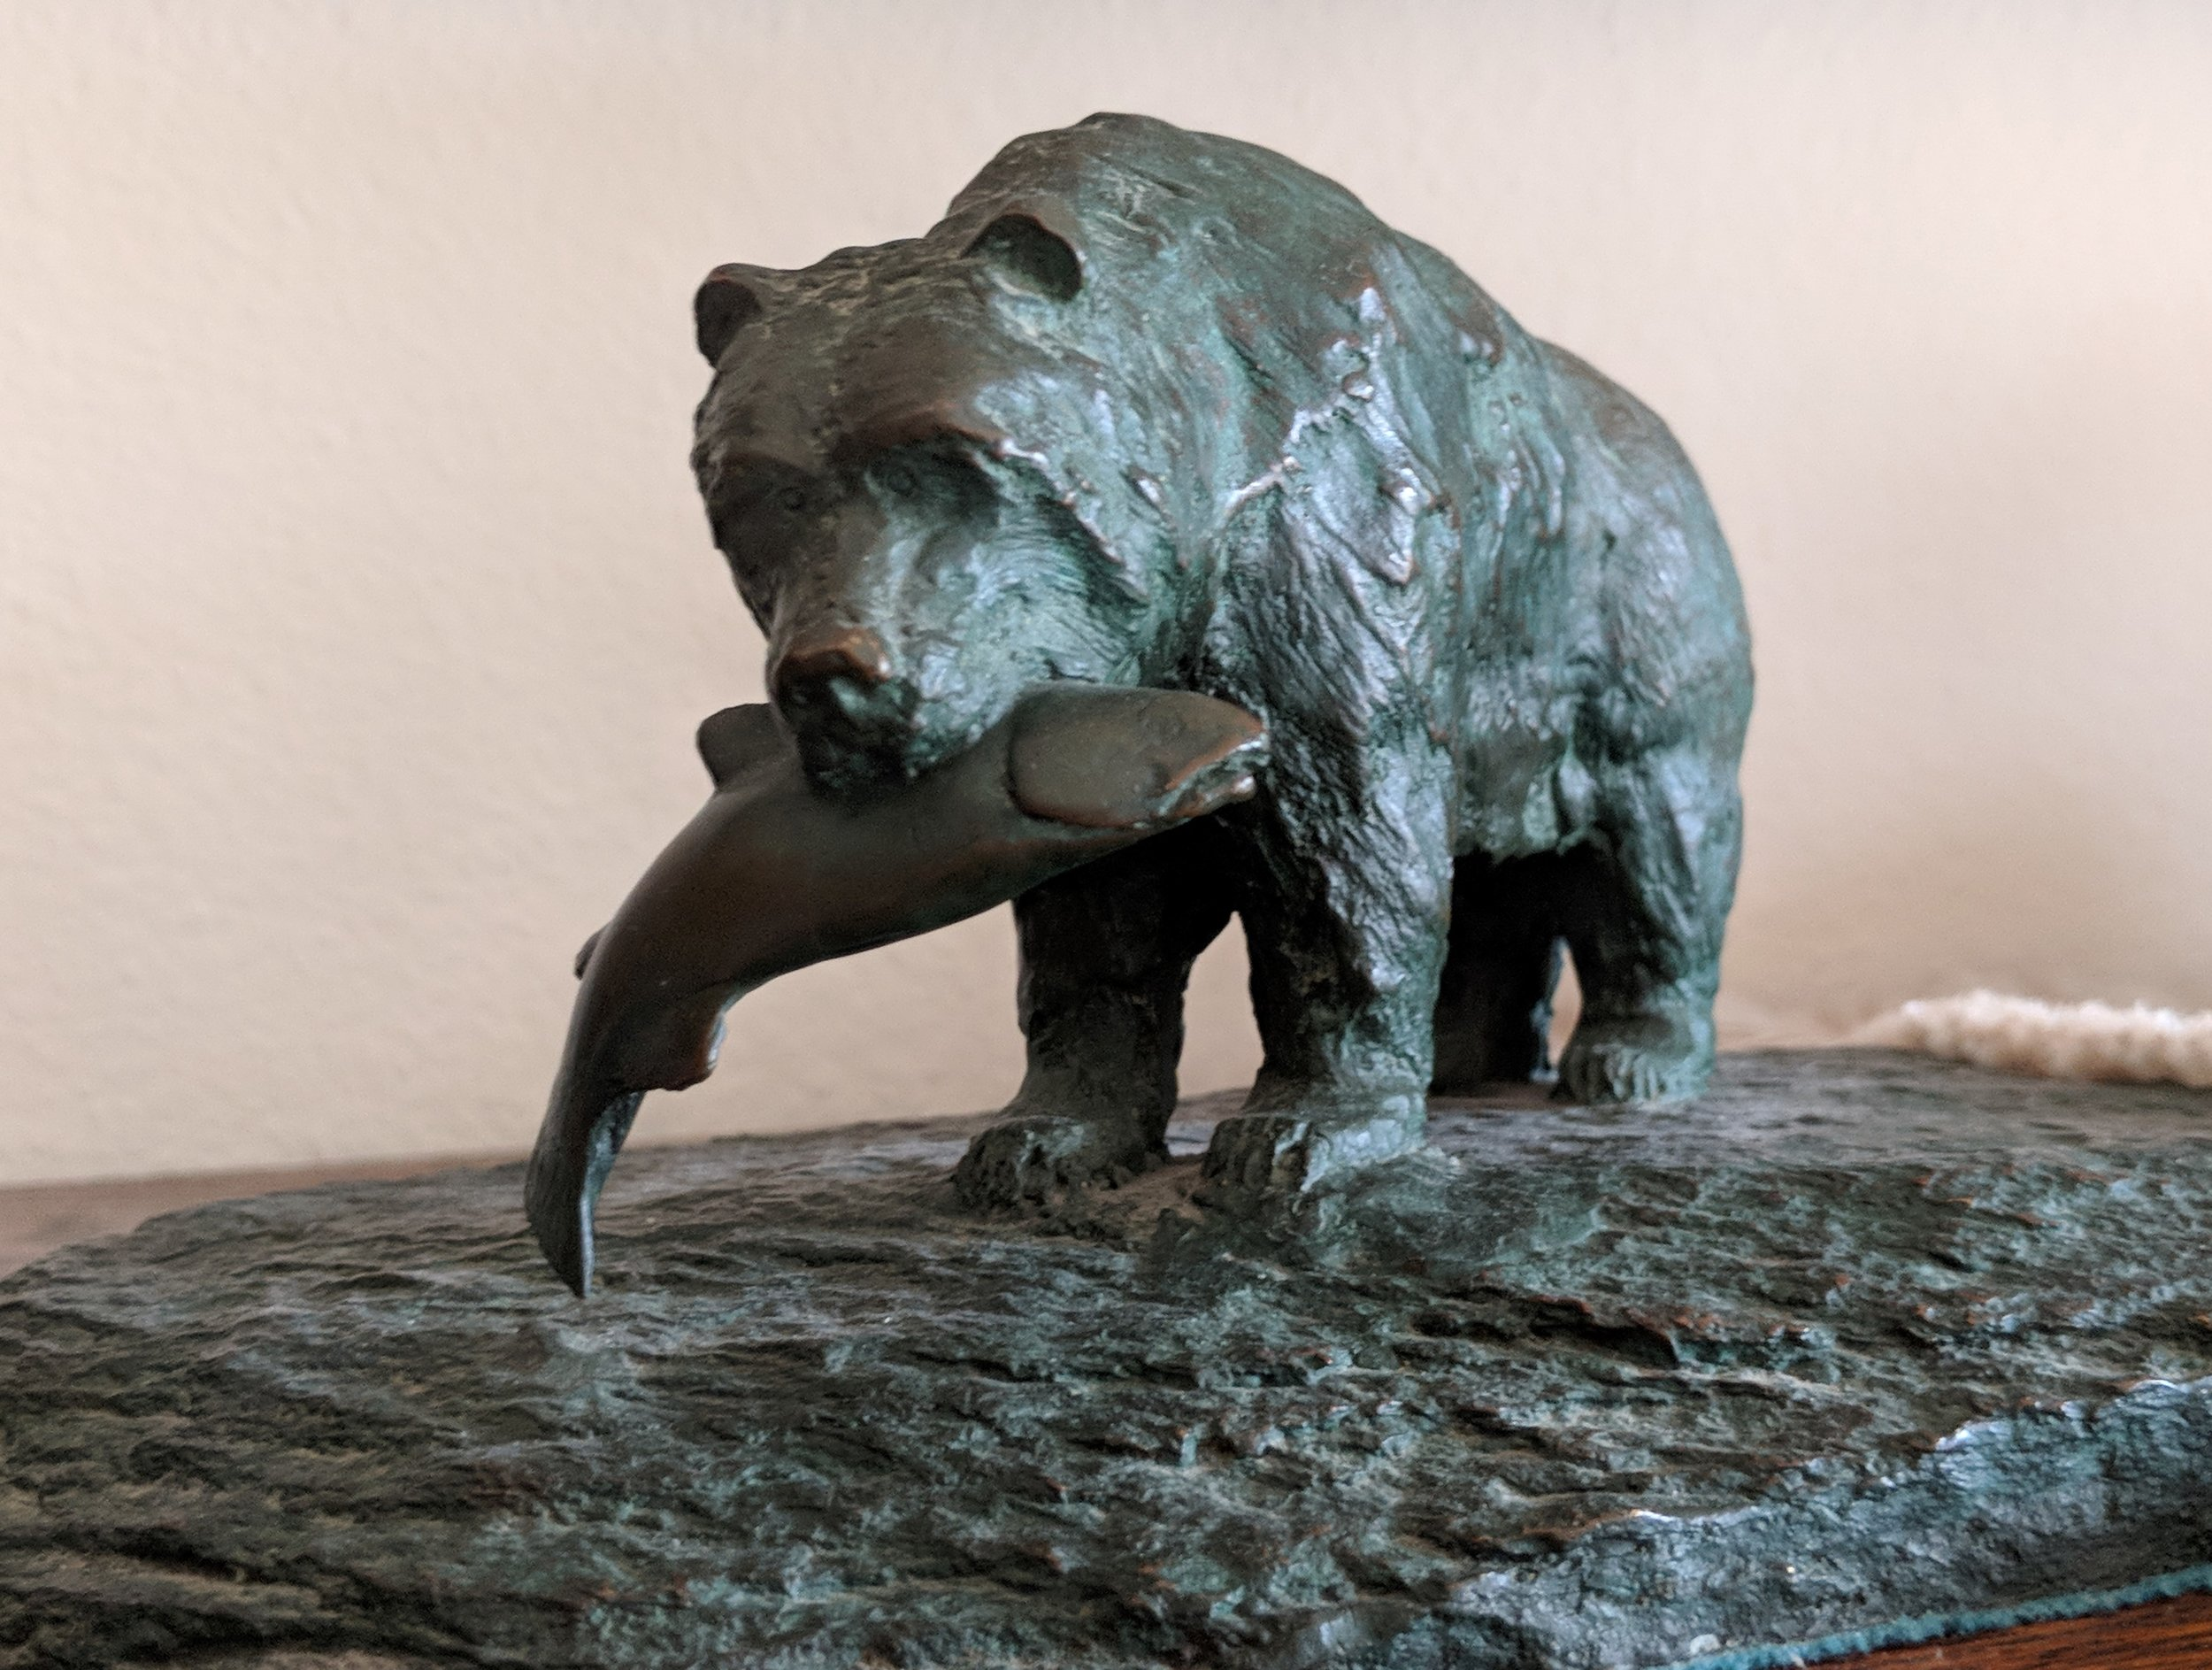 John's attention to detail is very much in evidence with this fish catching bear sculpture.